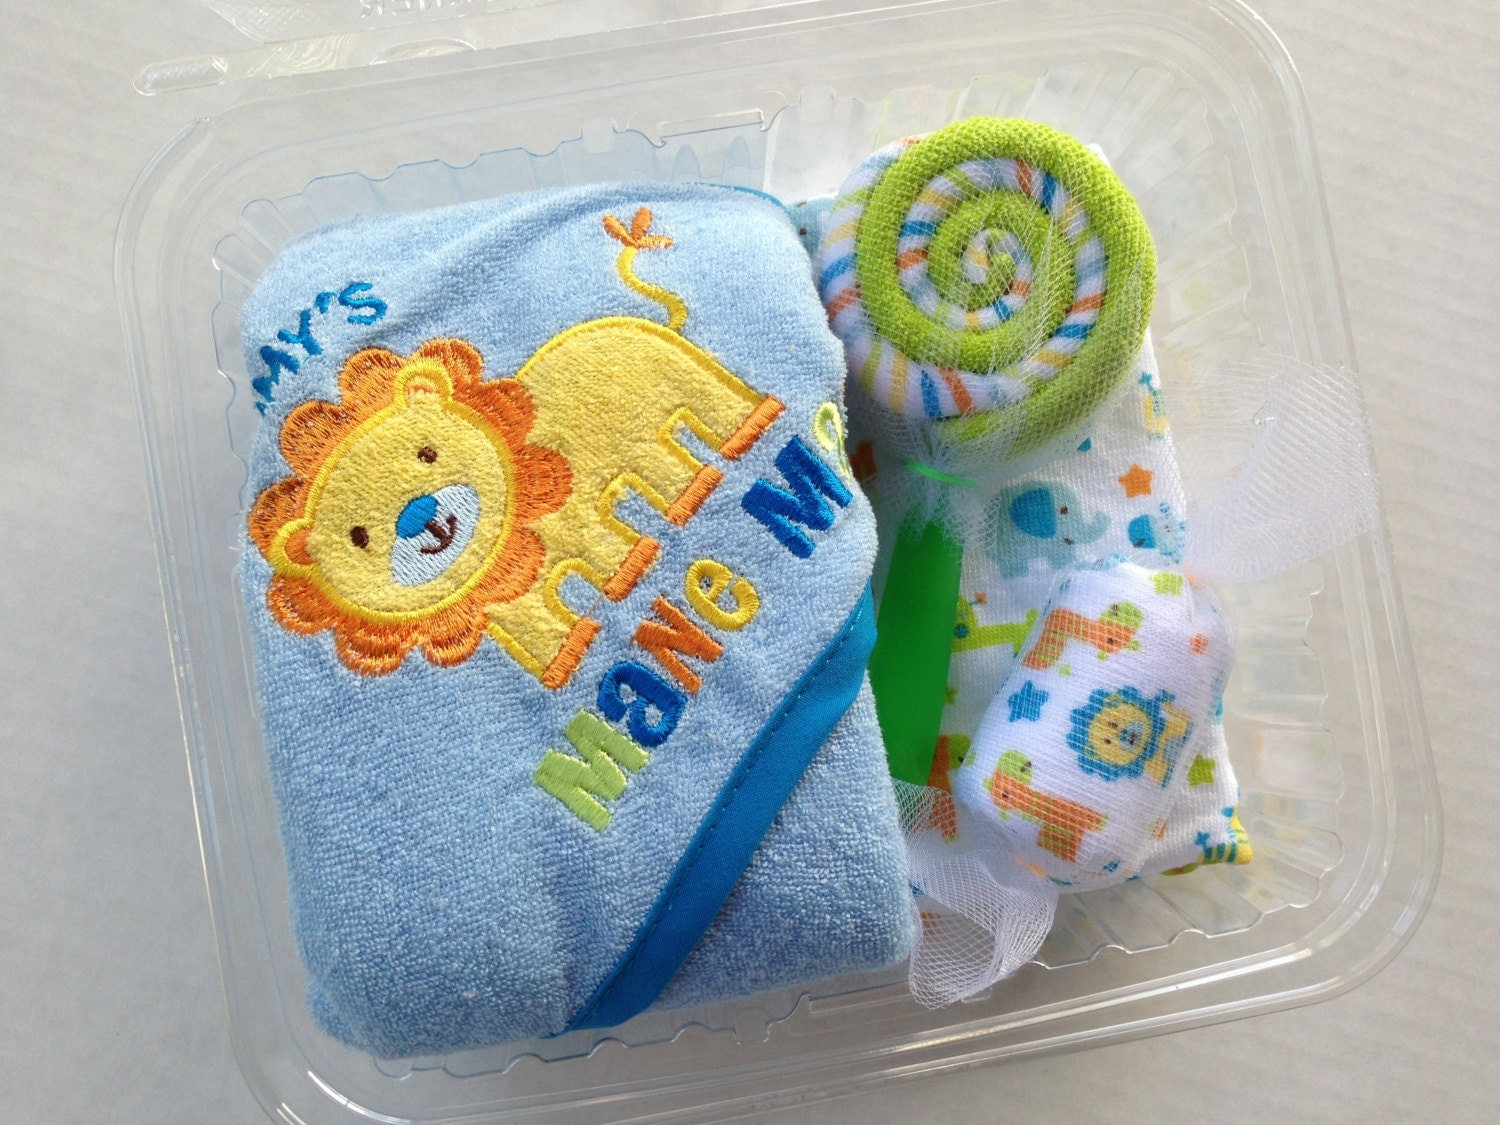 Baby Gift Bath Sets : Safari baby bath set gift boy by littletsweetreats